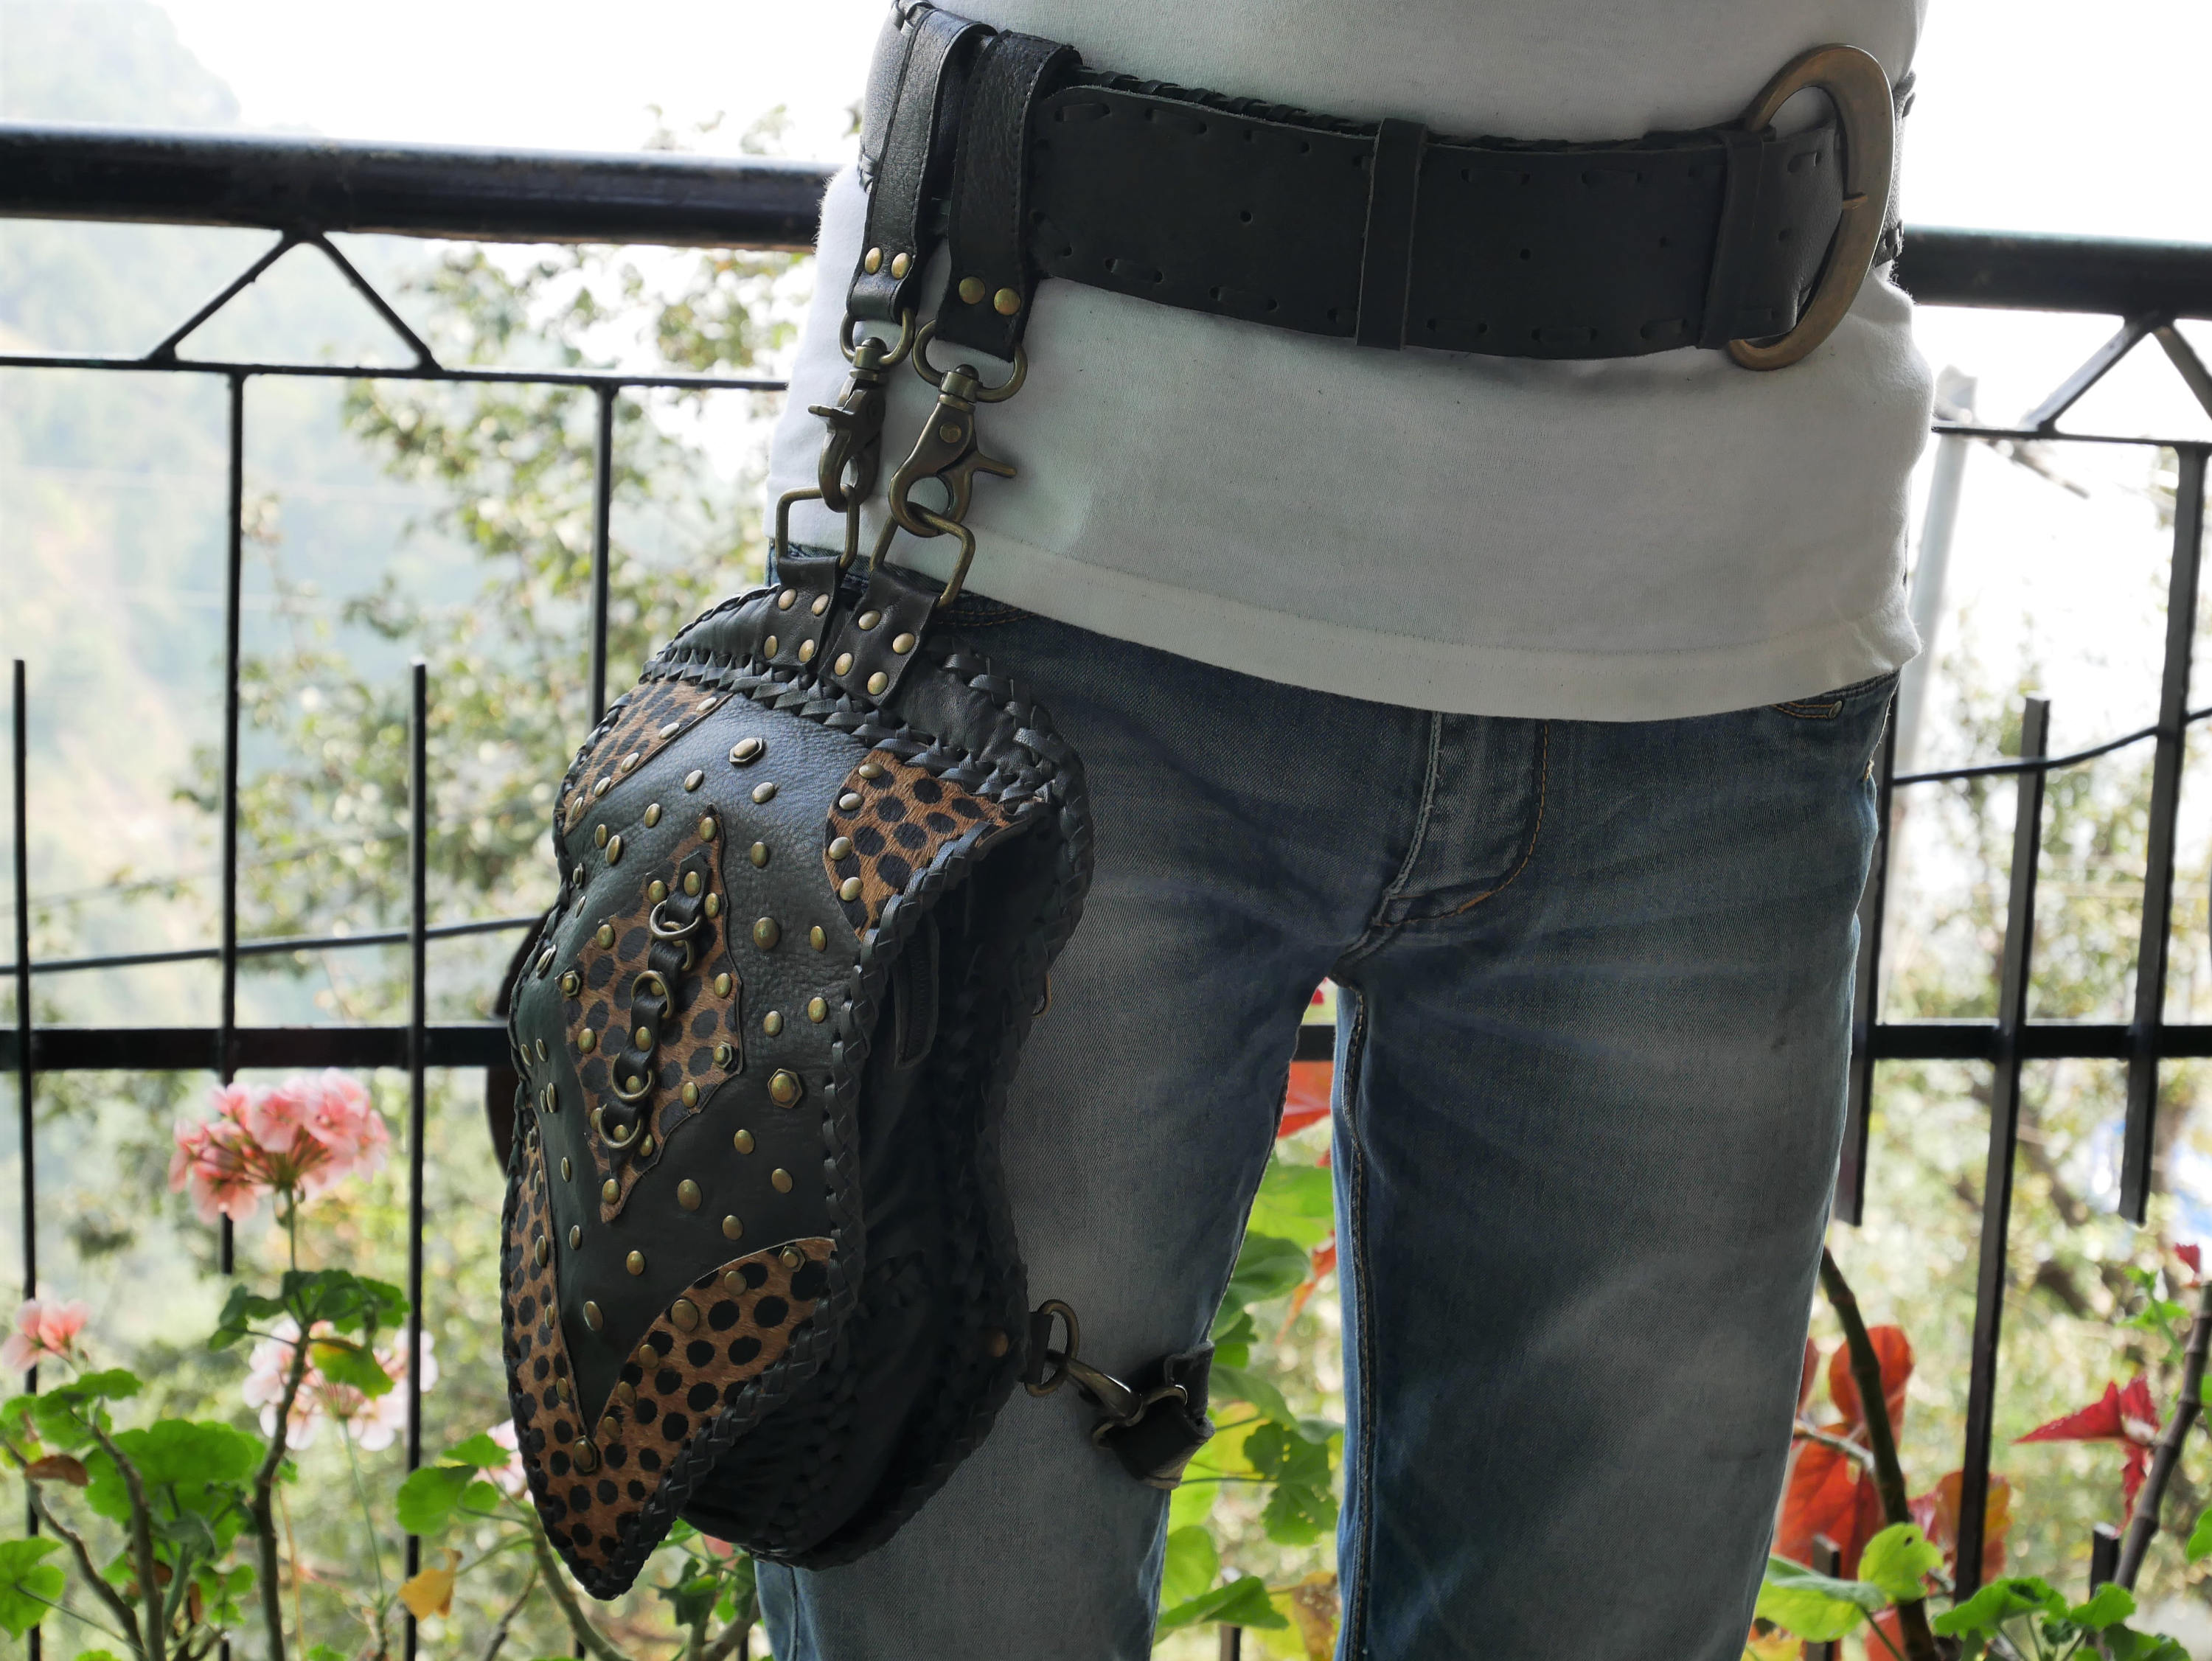 Warrior pack - thigh bag - leather thigh holster - burning man belt bag